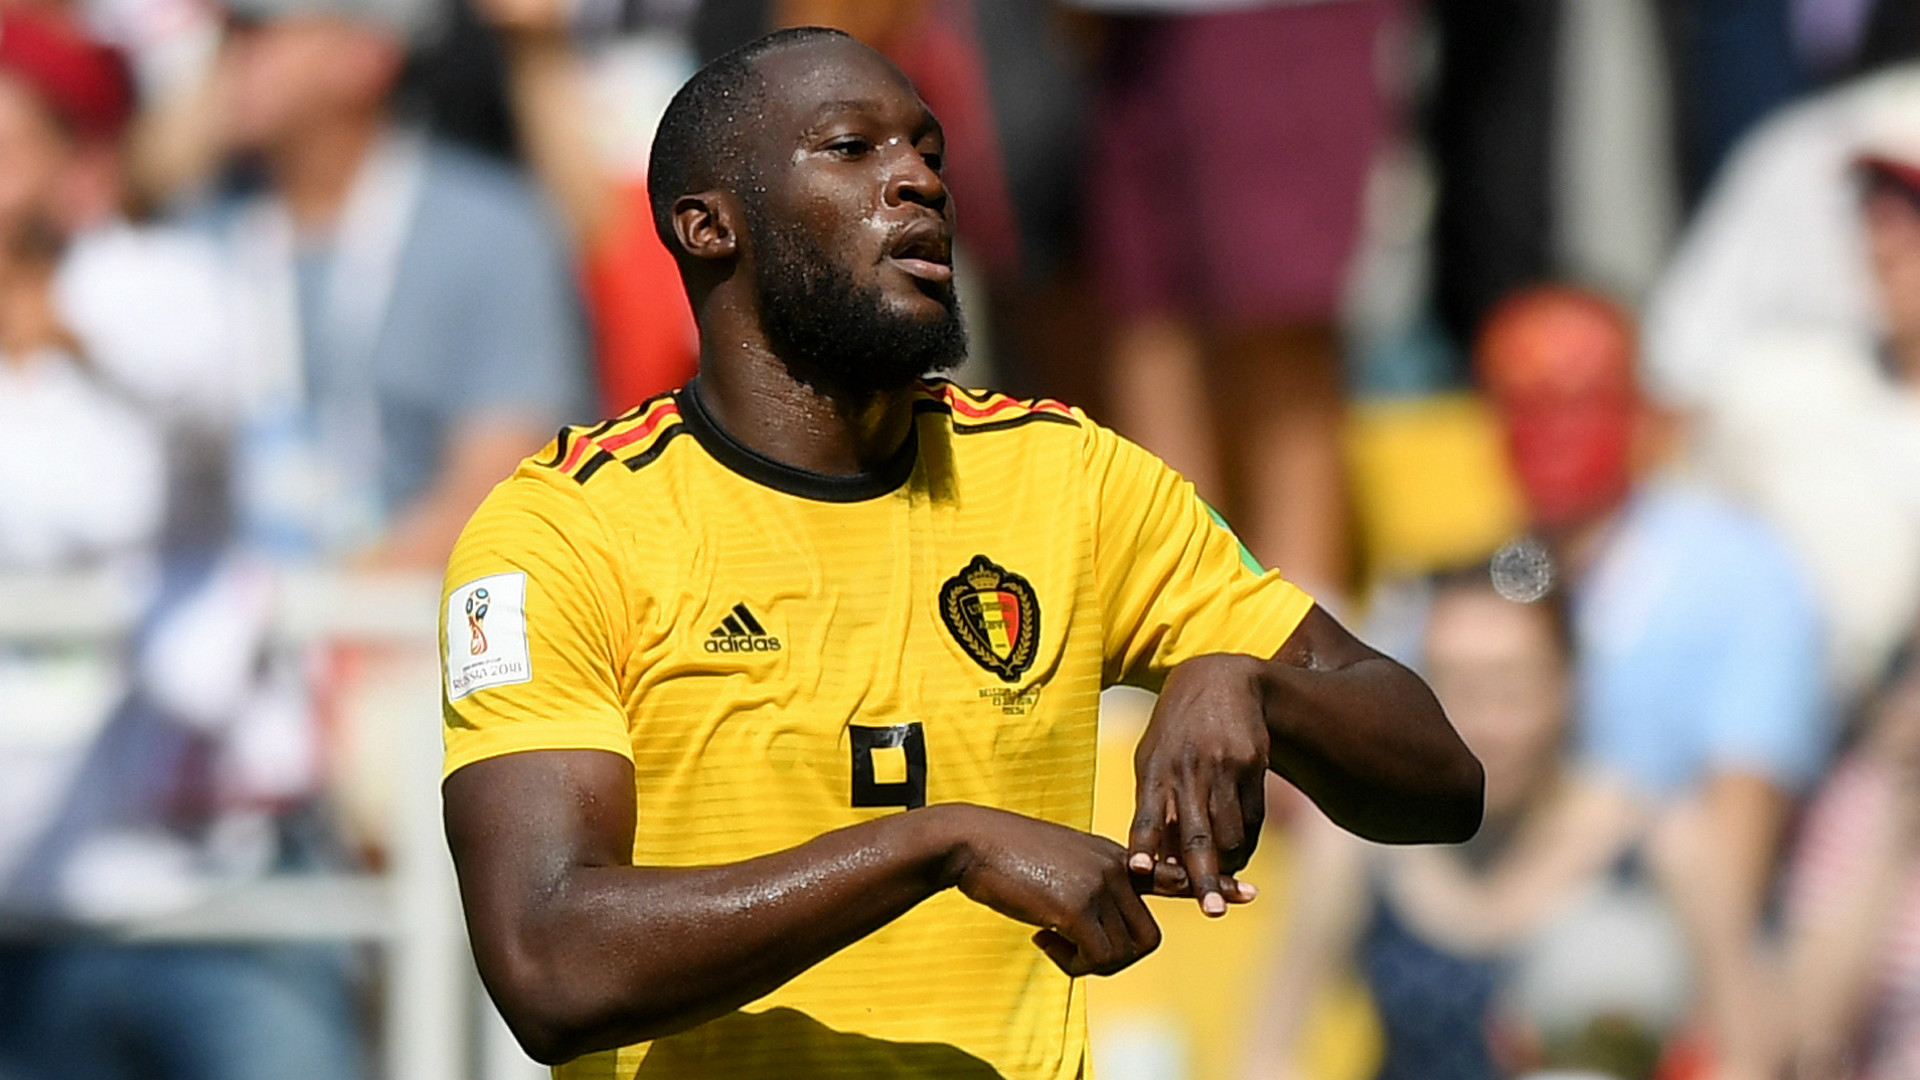 Romelu Lukaku, Eden Hazard, Dries Mertens doubtful for England game